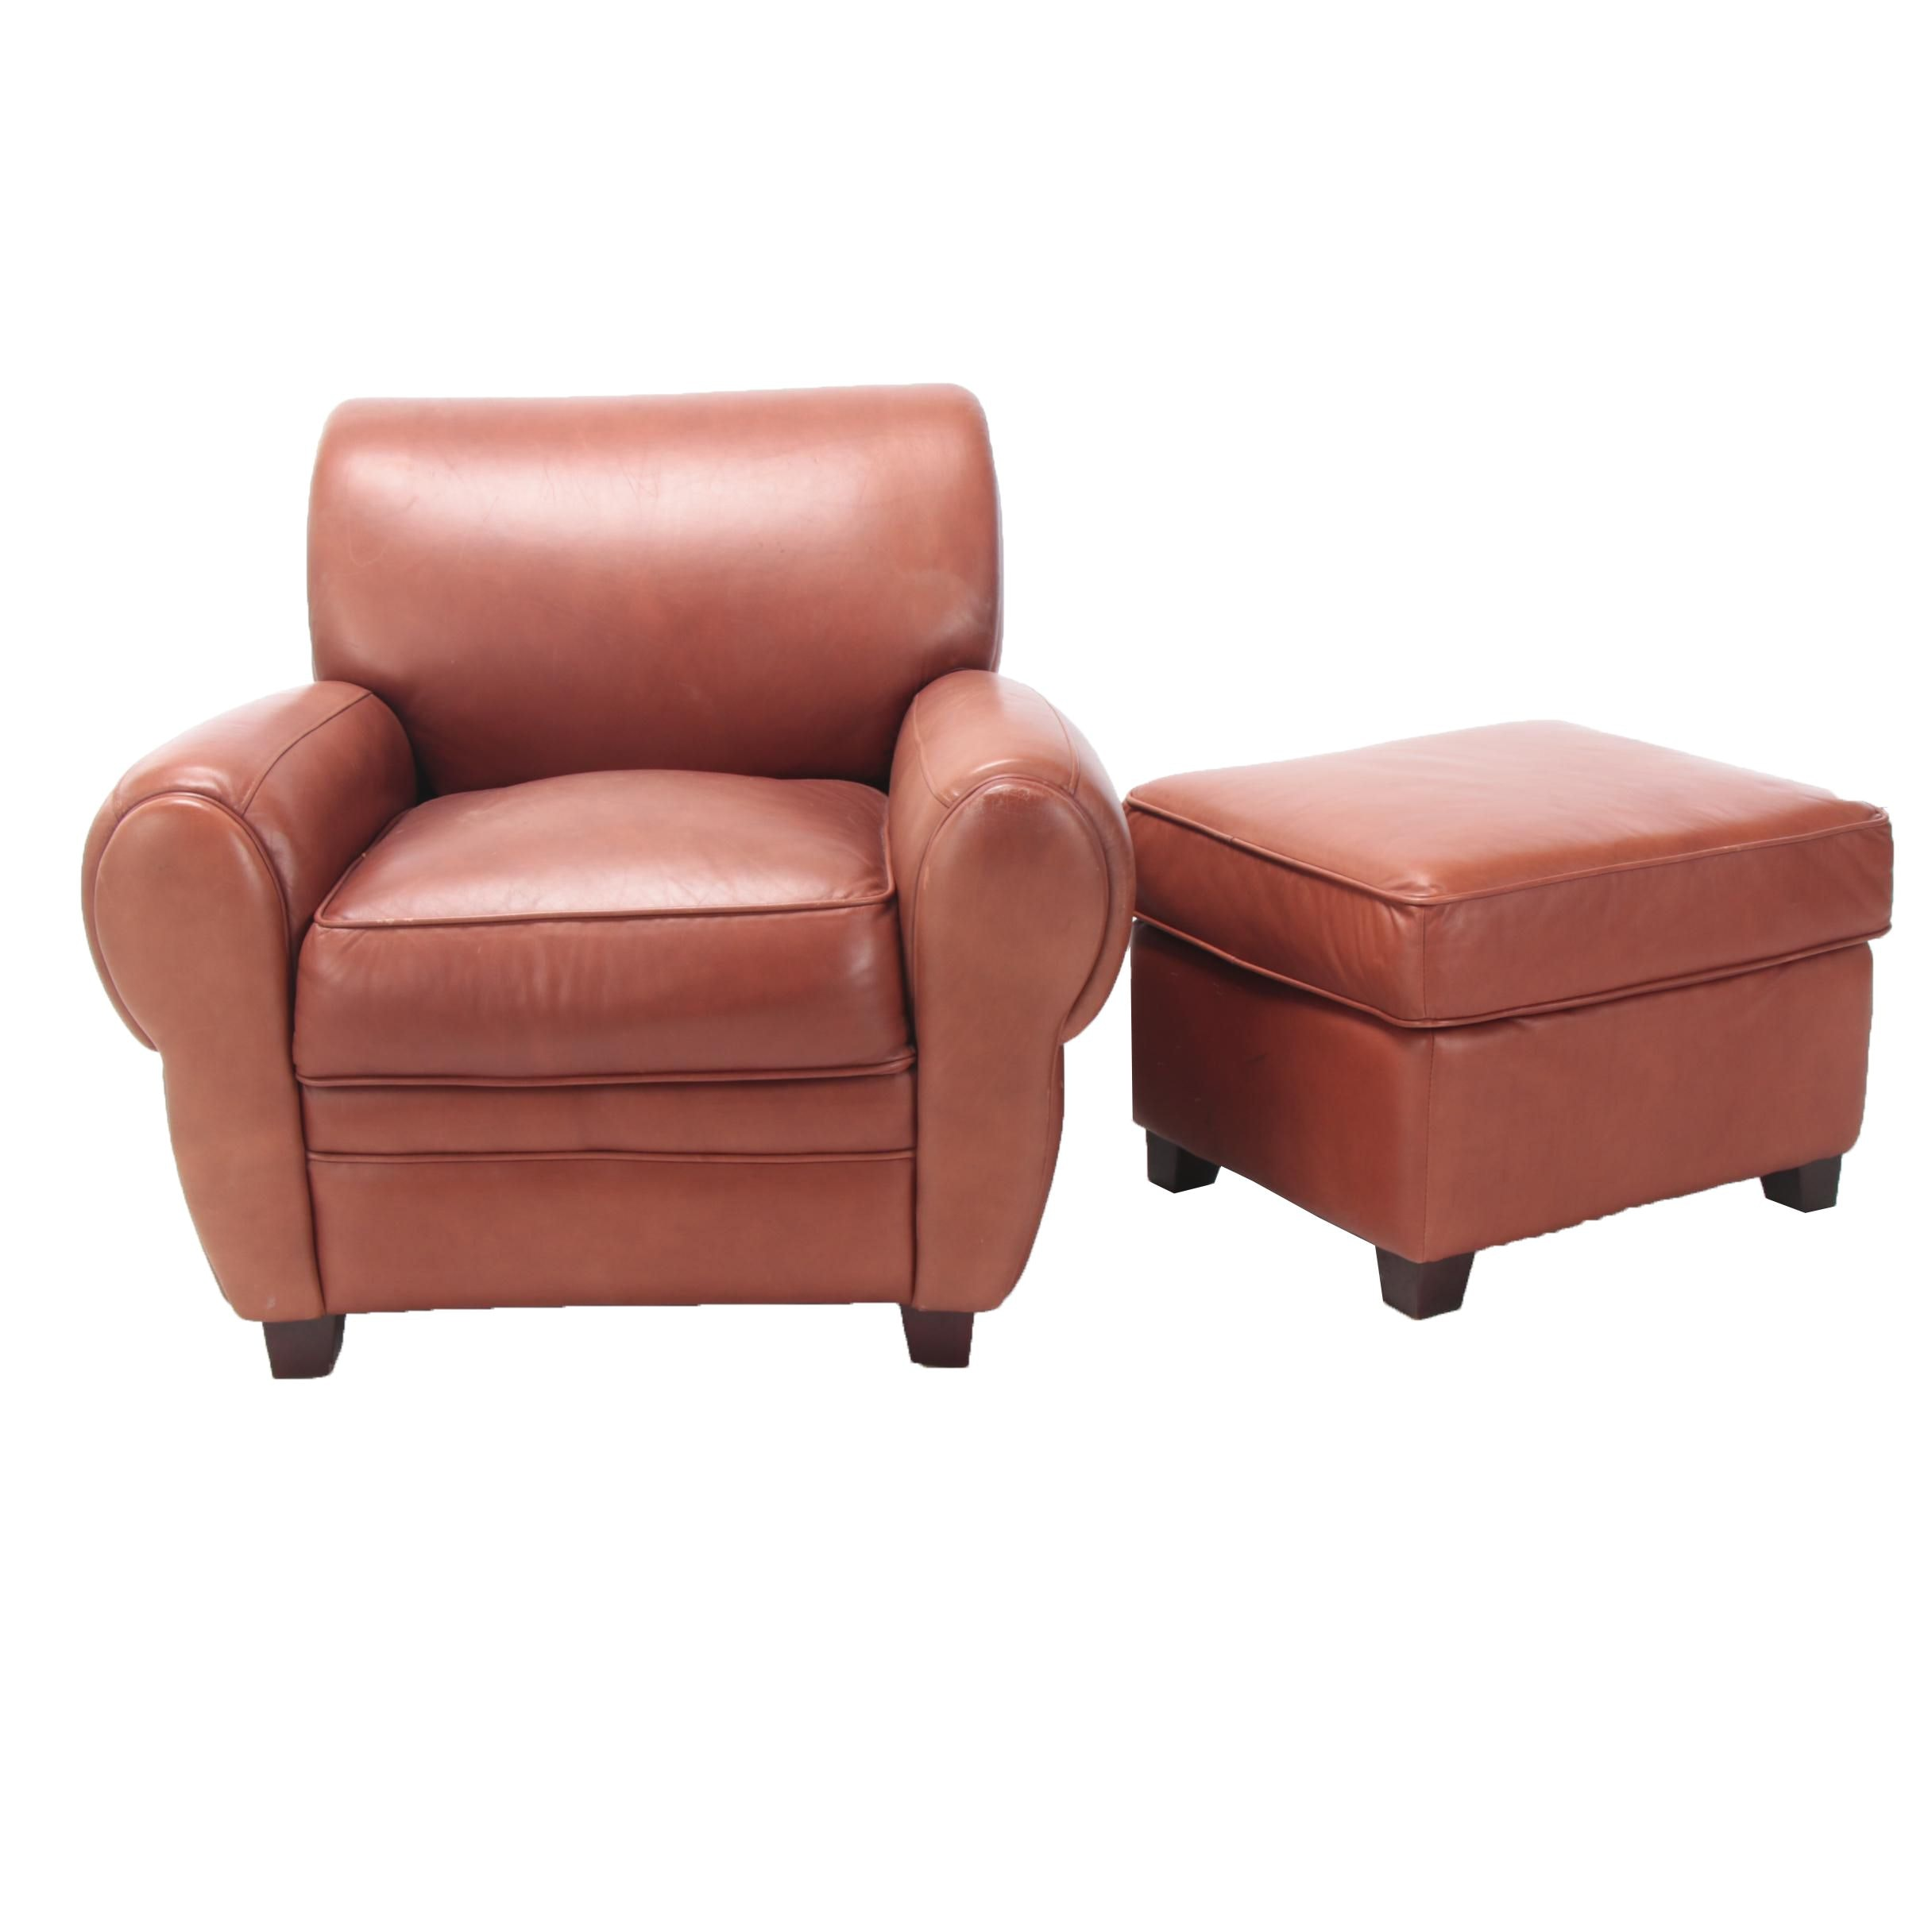 DeCoro Brown Leather Armchair and Ottoman